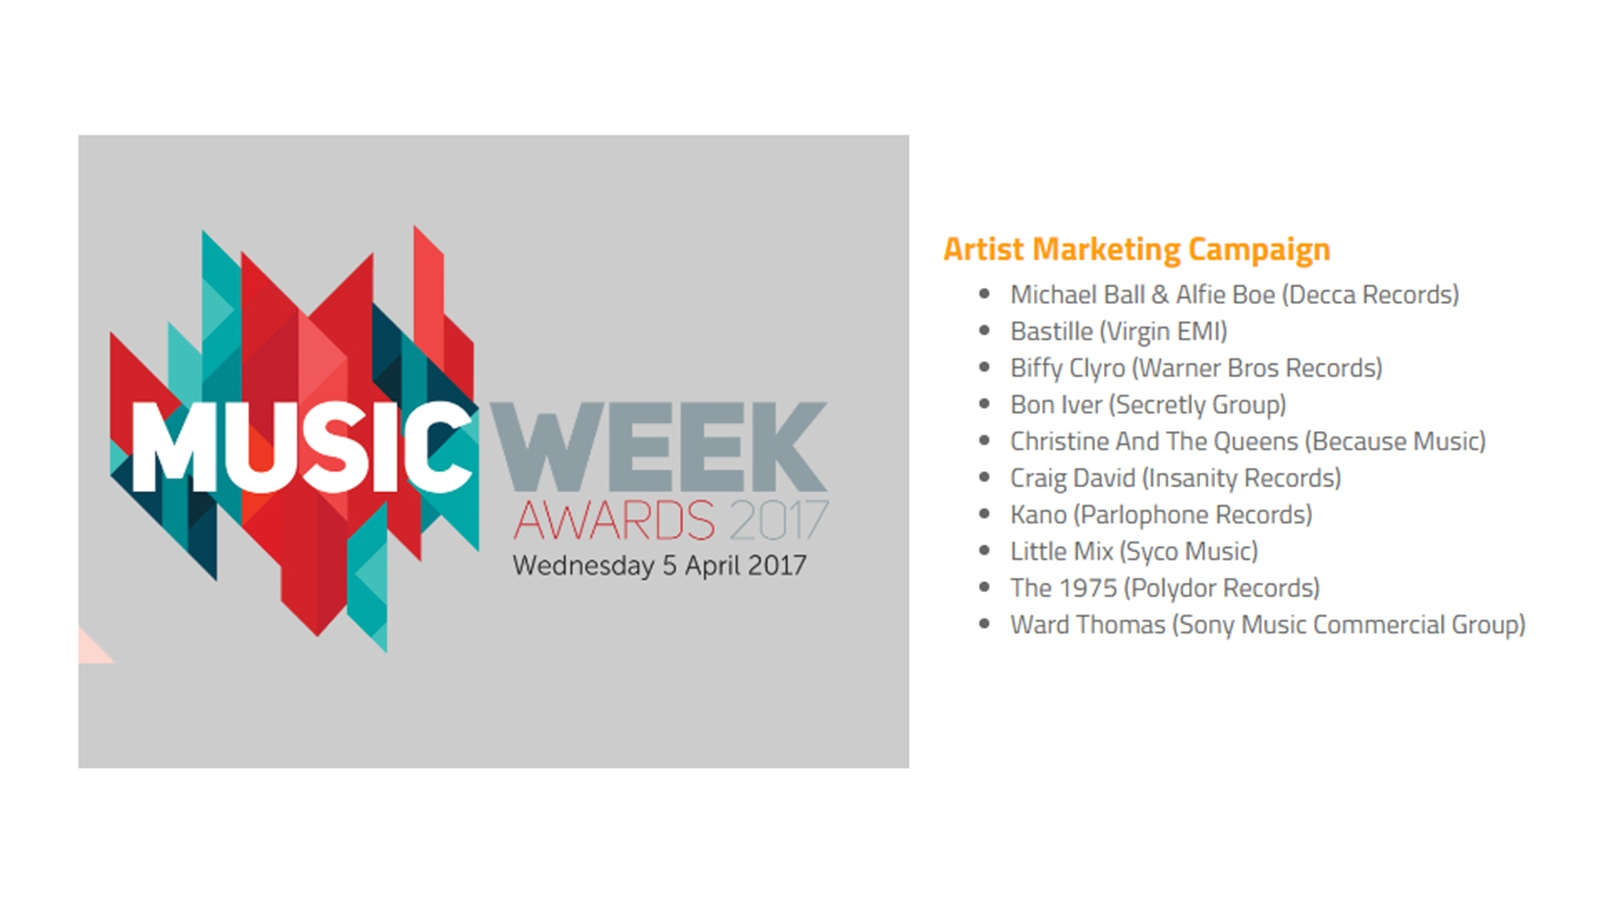 Nominated For Best Artist Marketing Campaign at 2017's Music Week Awards